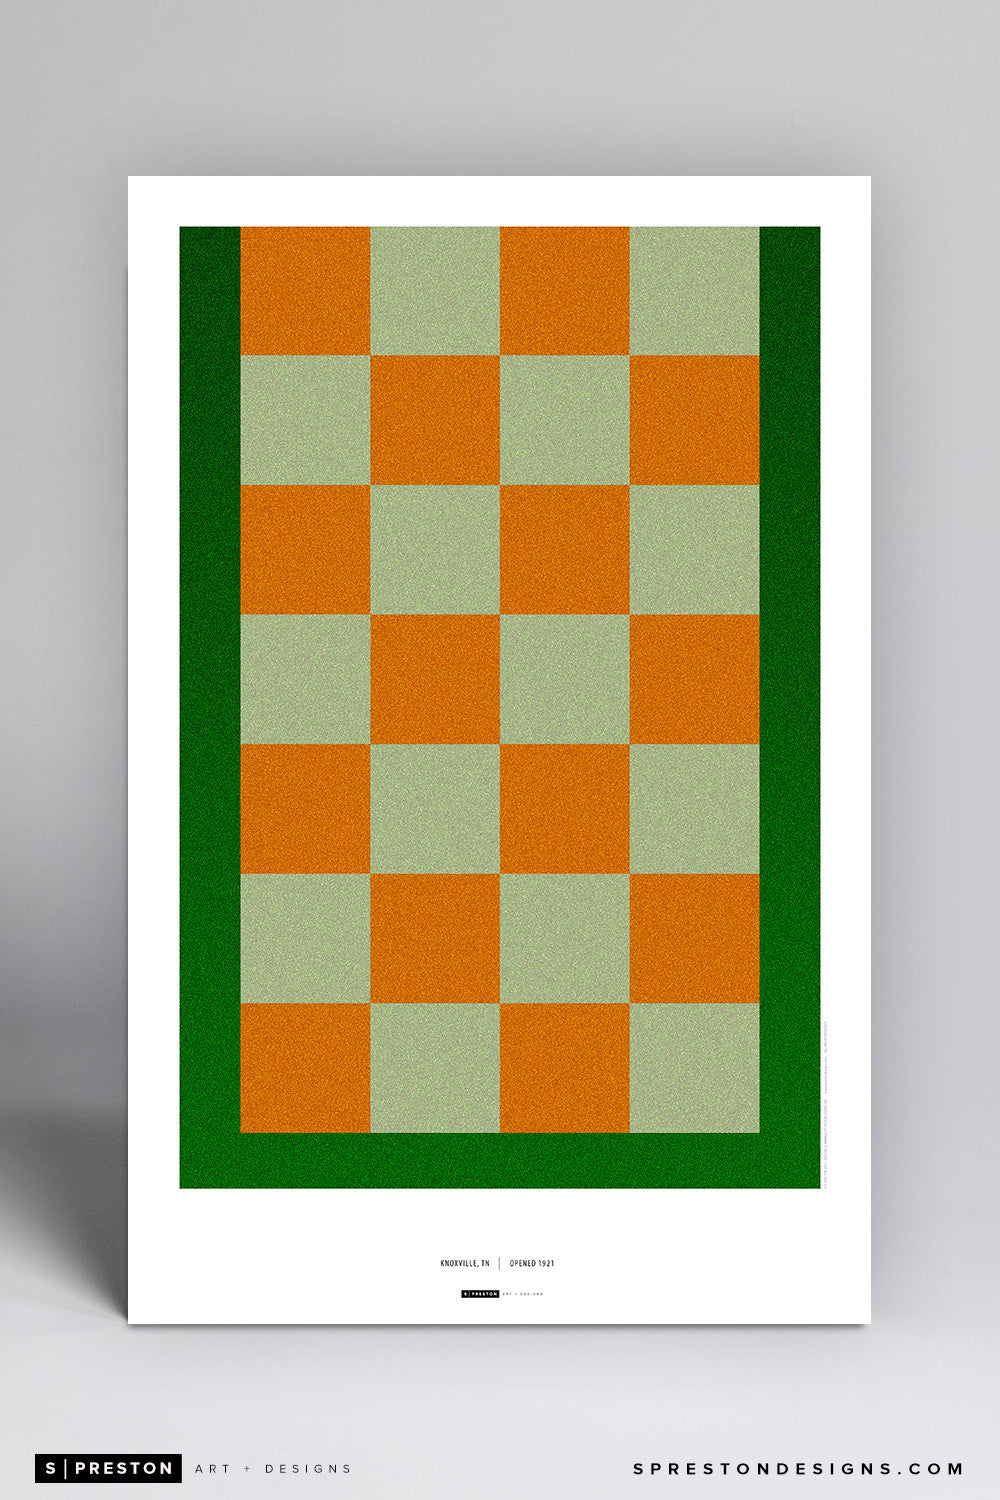 Minimalist Neyland Stadium Poster Print University of Tennessee - S Preston